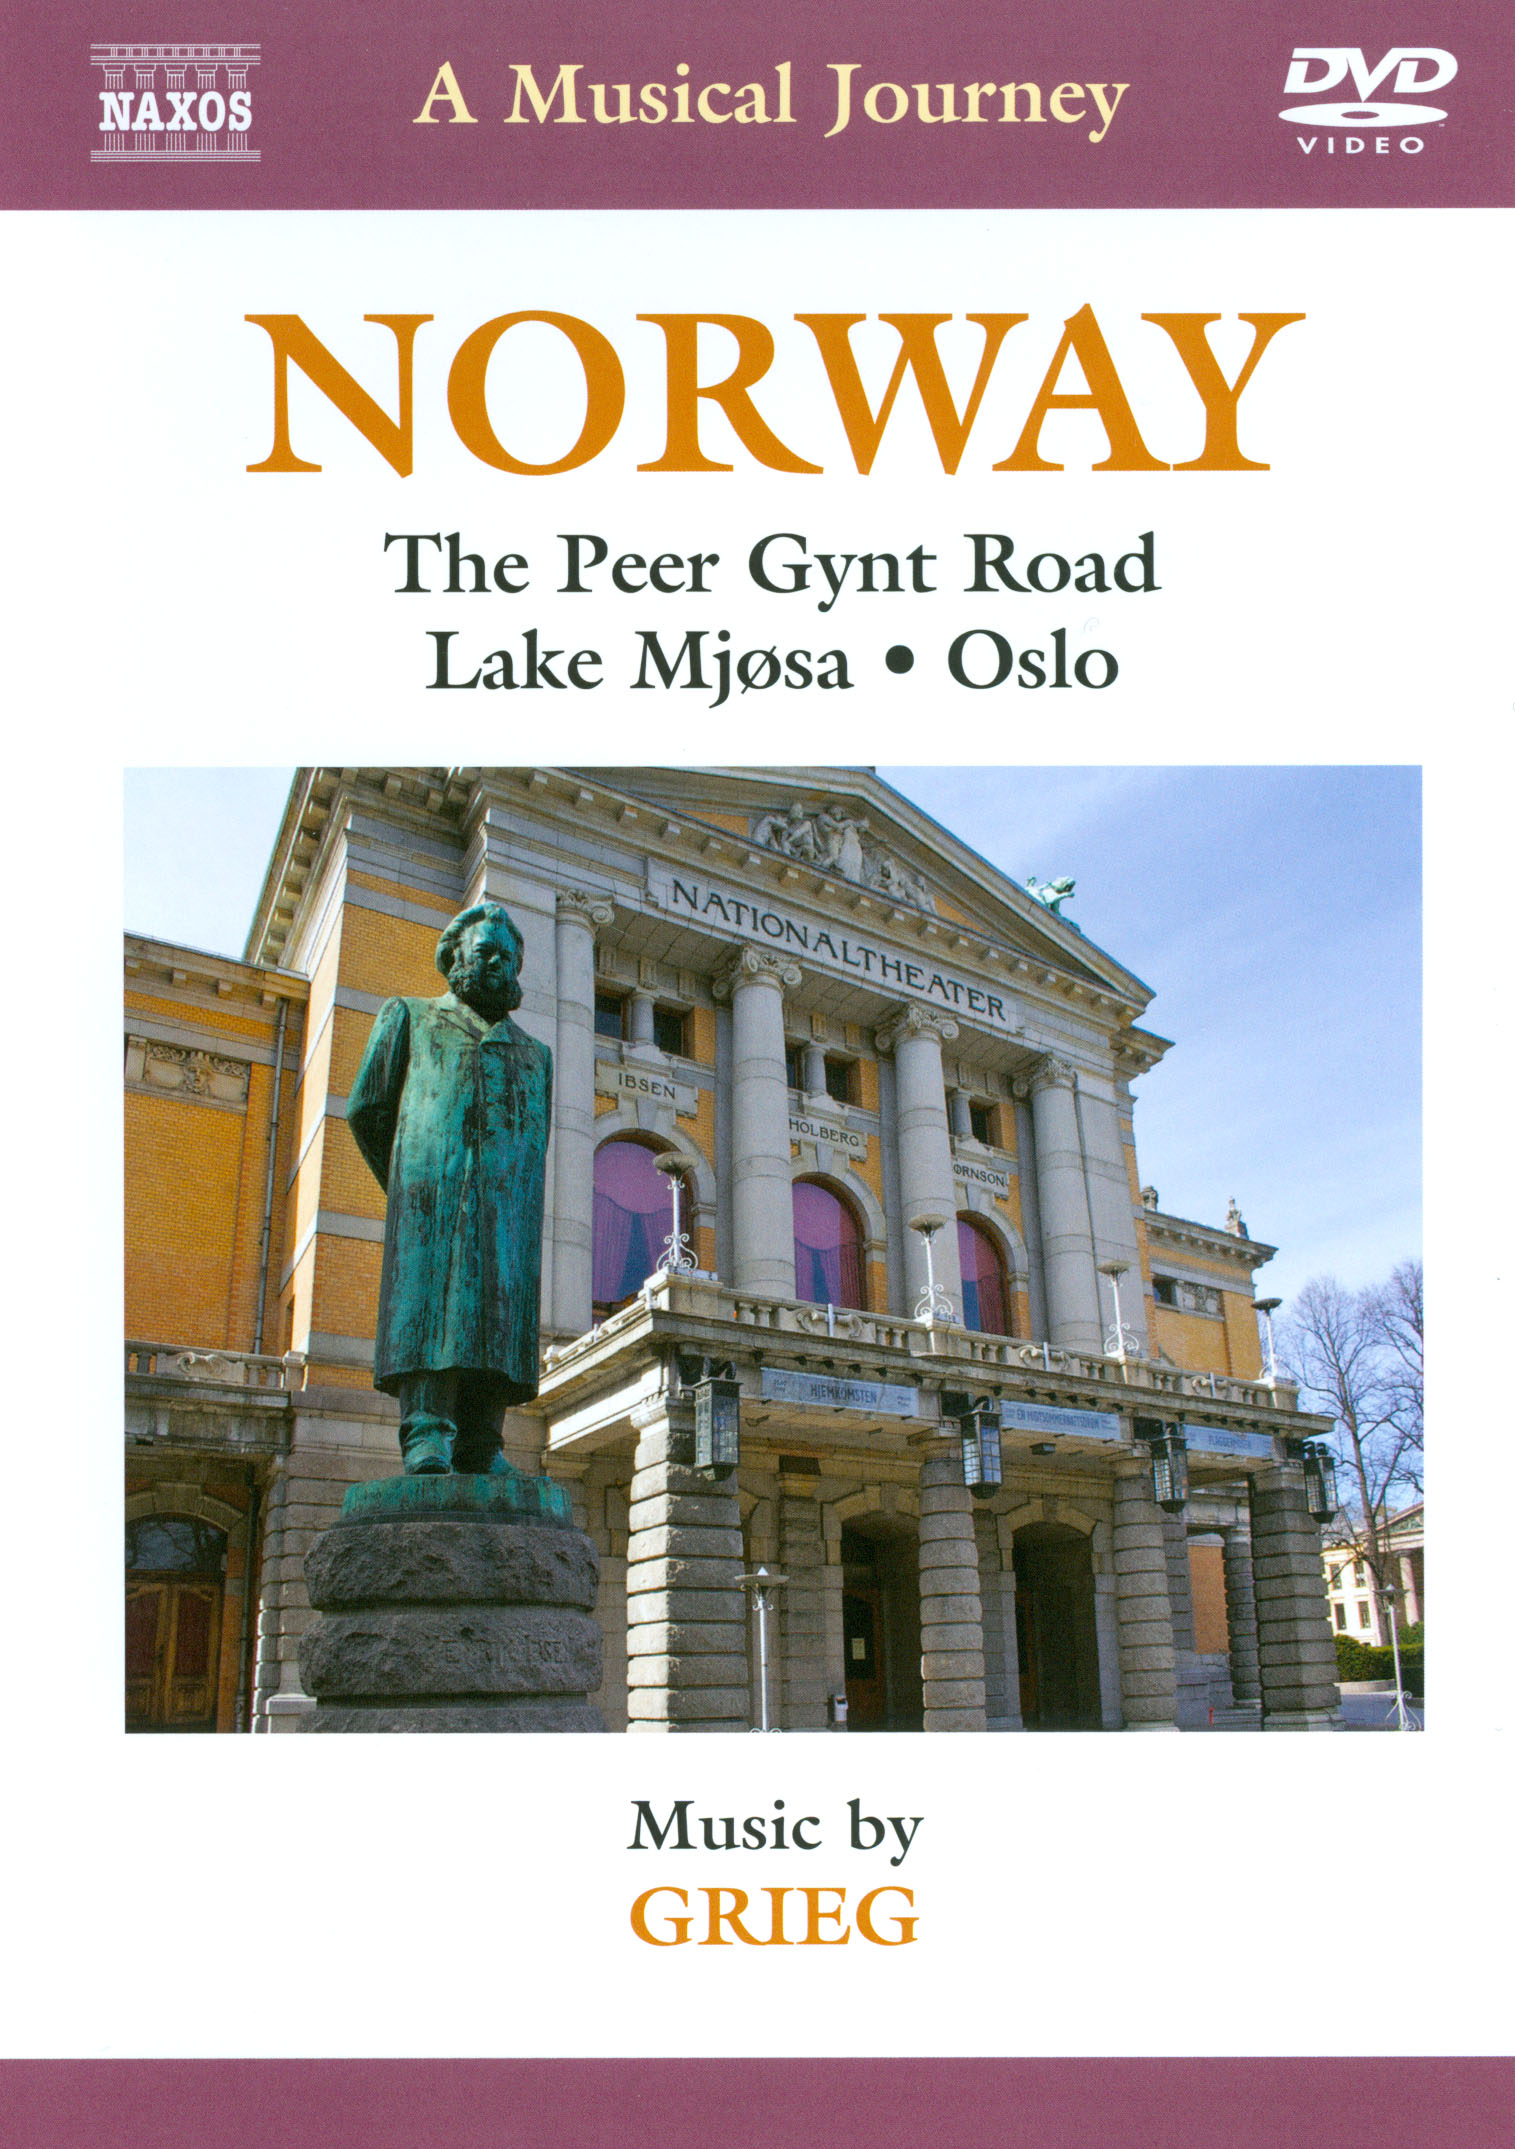 A Musical Journey: Norway - The Peer Gynt Road/Lake Mjøsa/Oslo